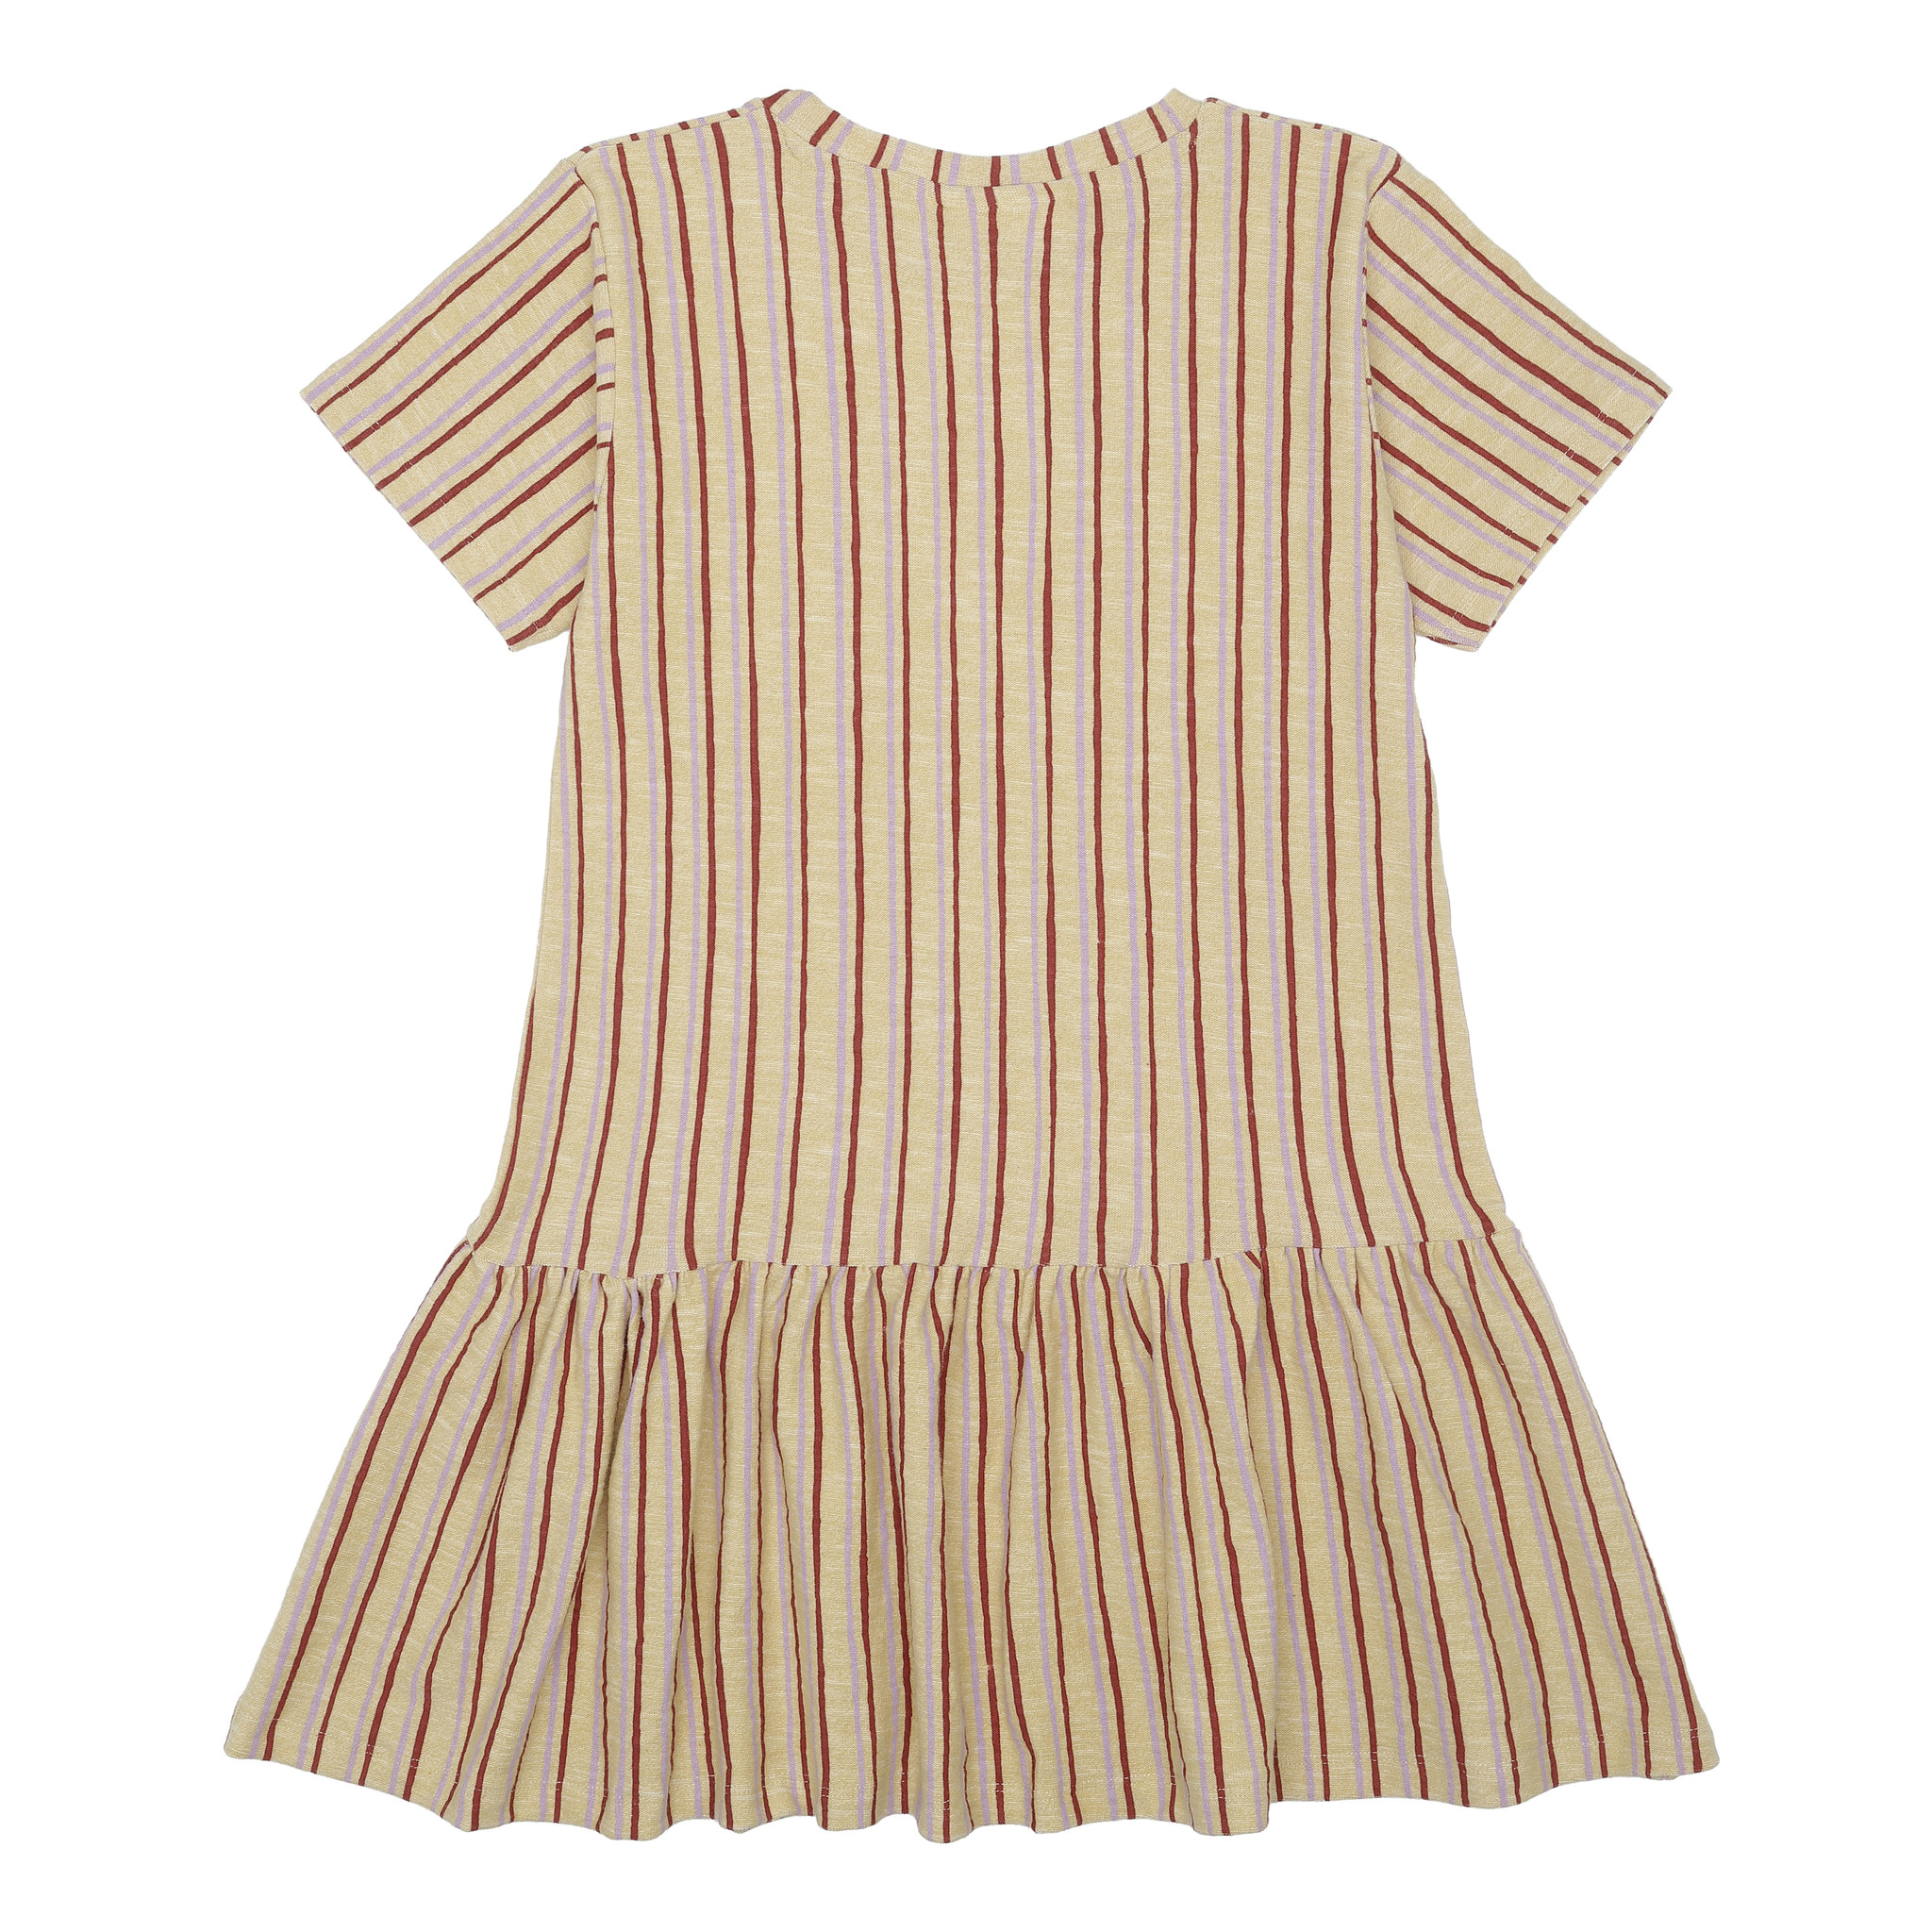 Doris dress - Jojoba / AOP Fringe-3